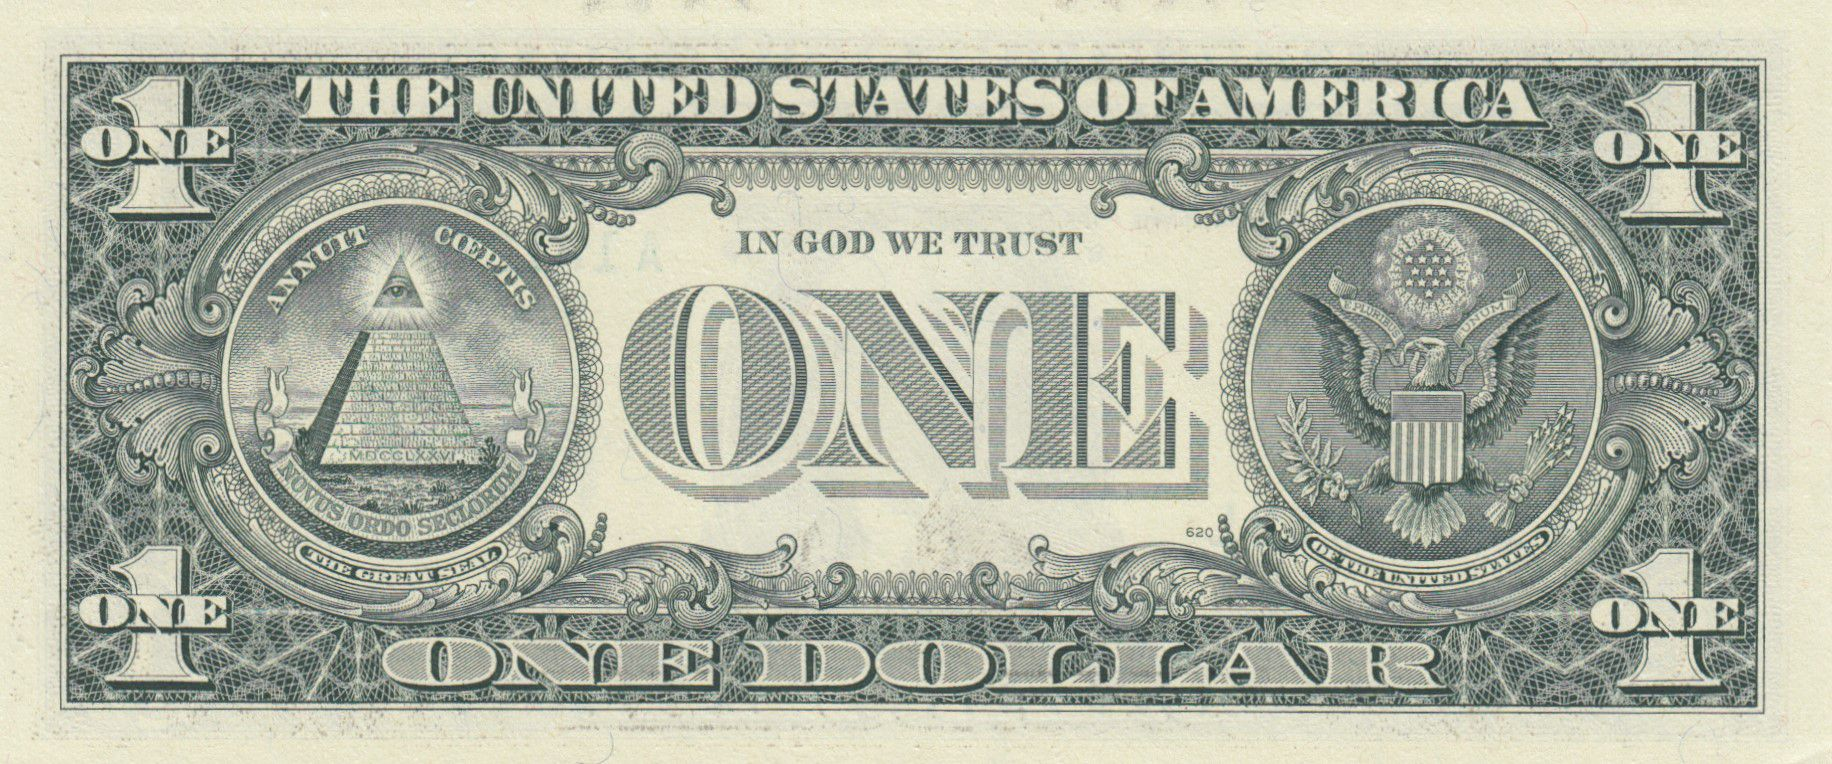 UNITED STATES 1 DOLLAR USA 1995 P 496 NEW YORK B UNC